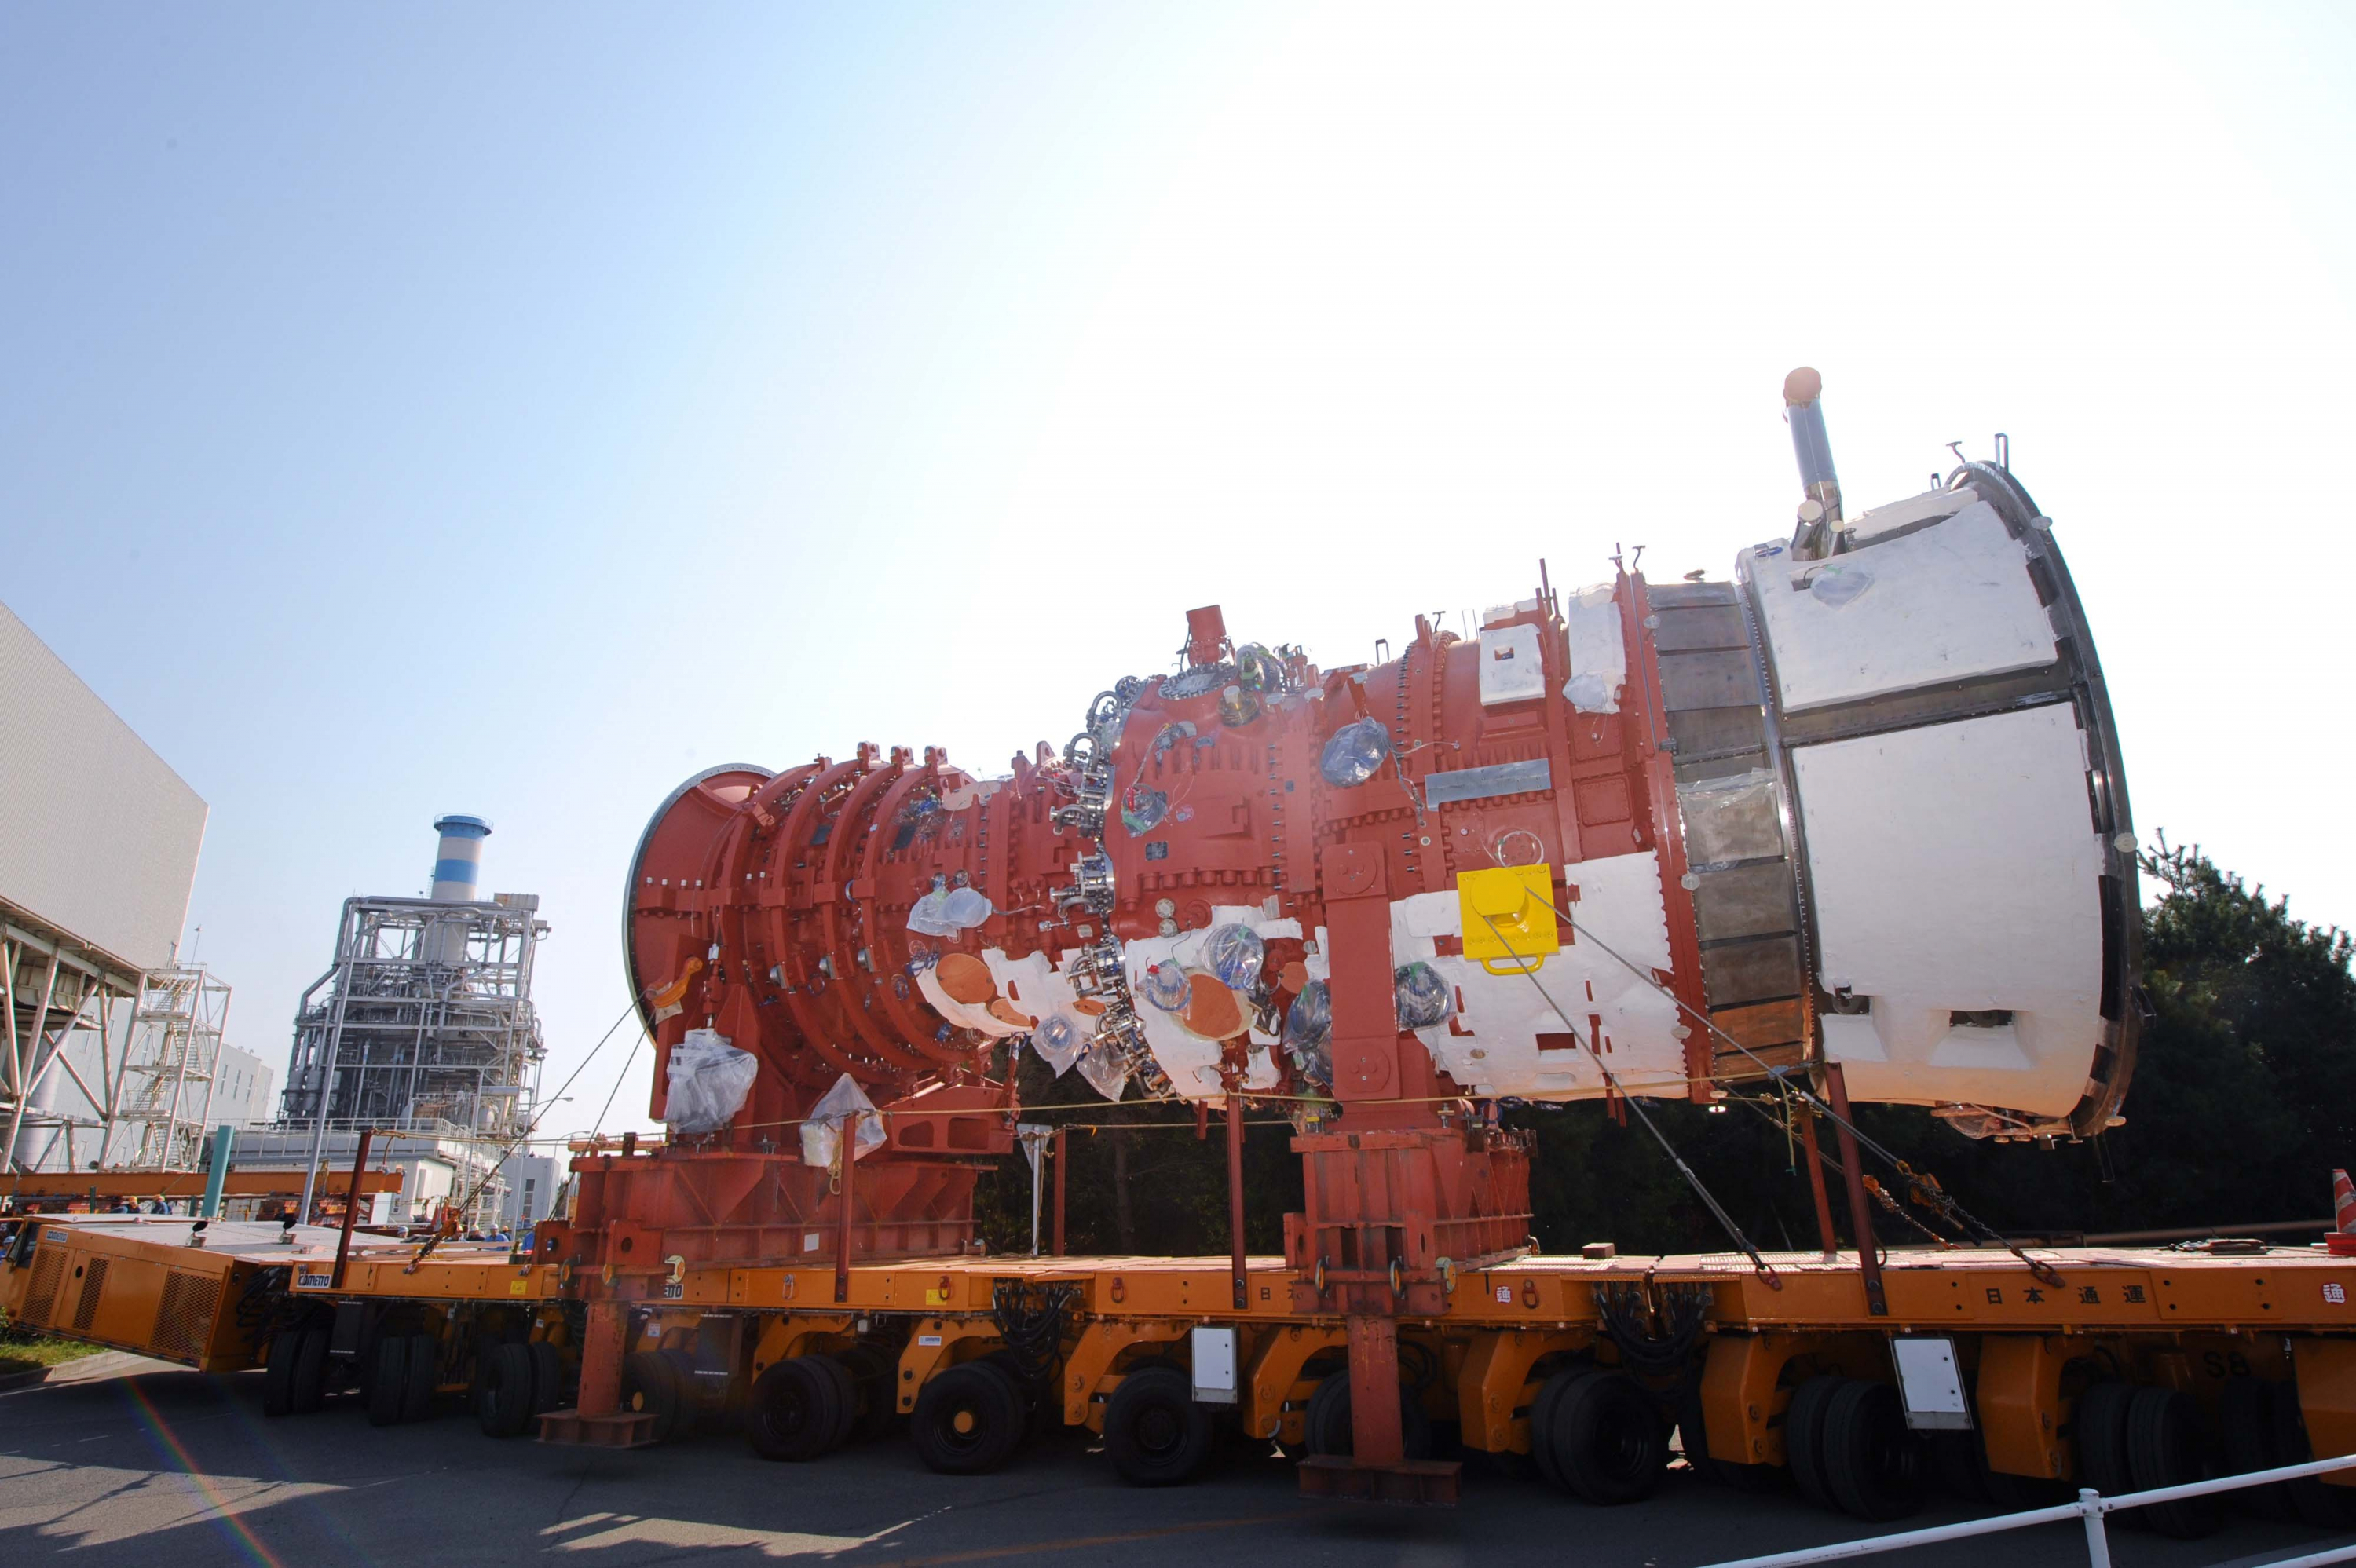 MHPS J-Series Gas Turbine Fleet Achieves One Million Commercial Operating Hours